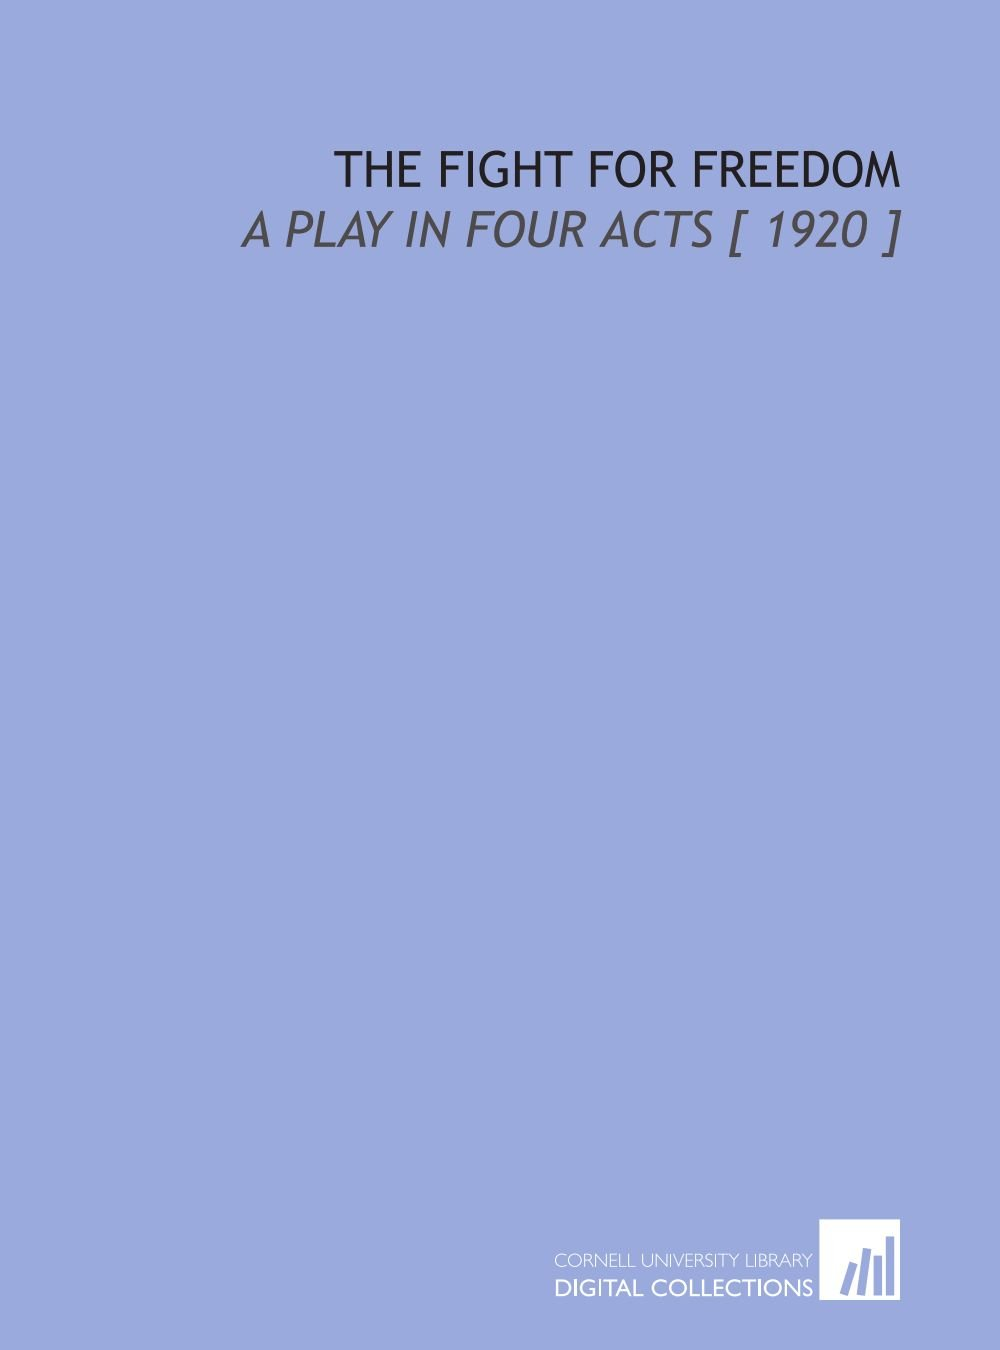 The Fight for Freedom: A Play in Four Acts [ 1920 ] PDF